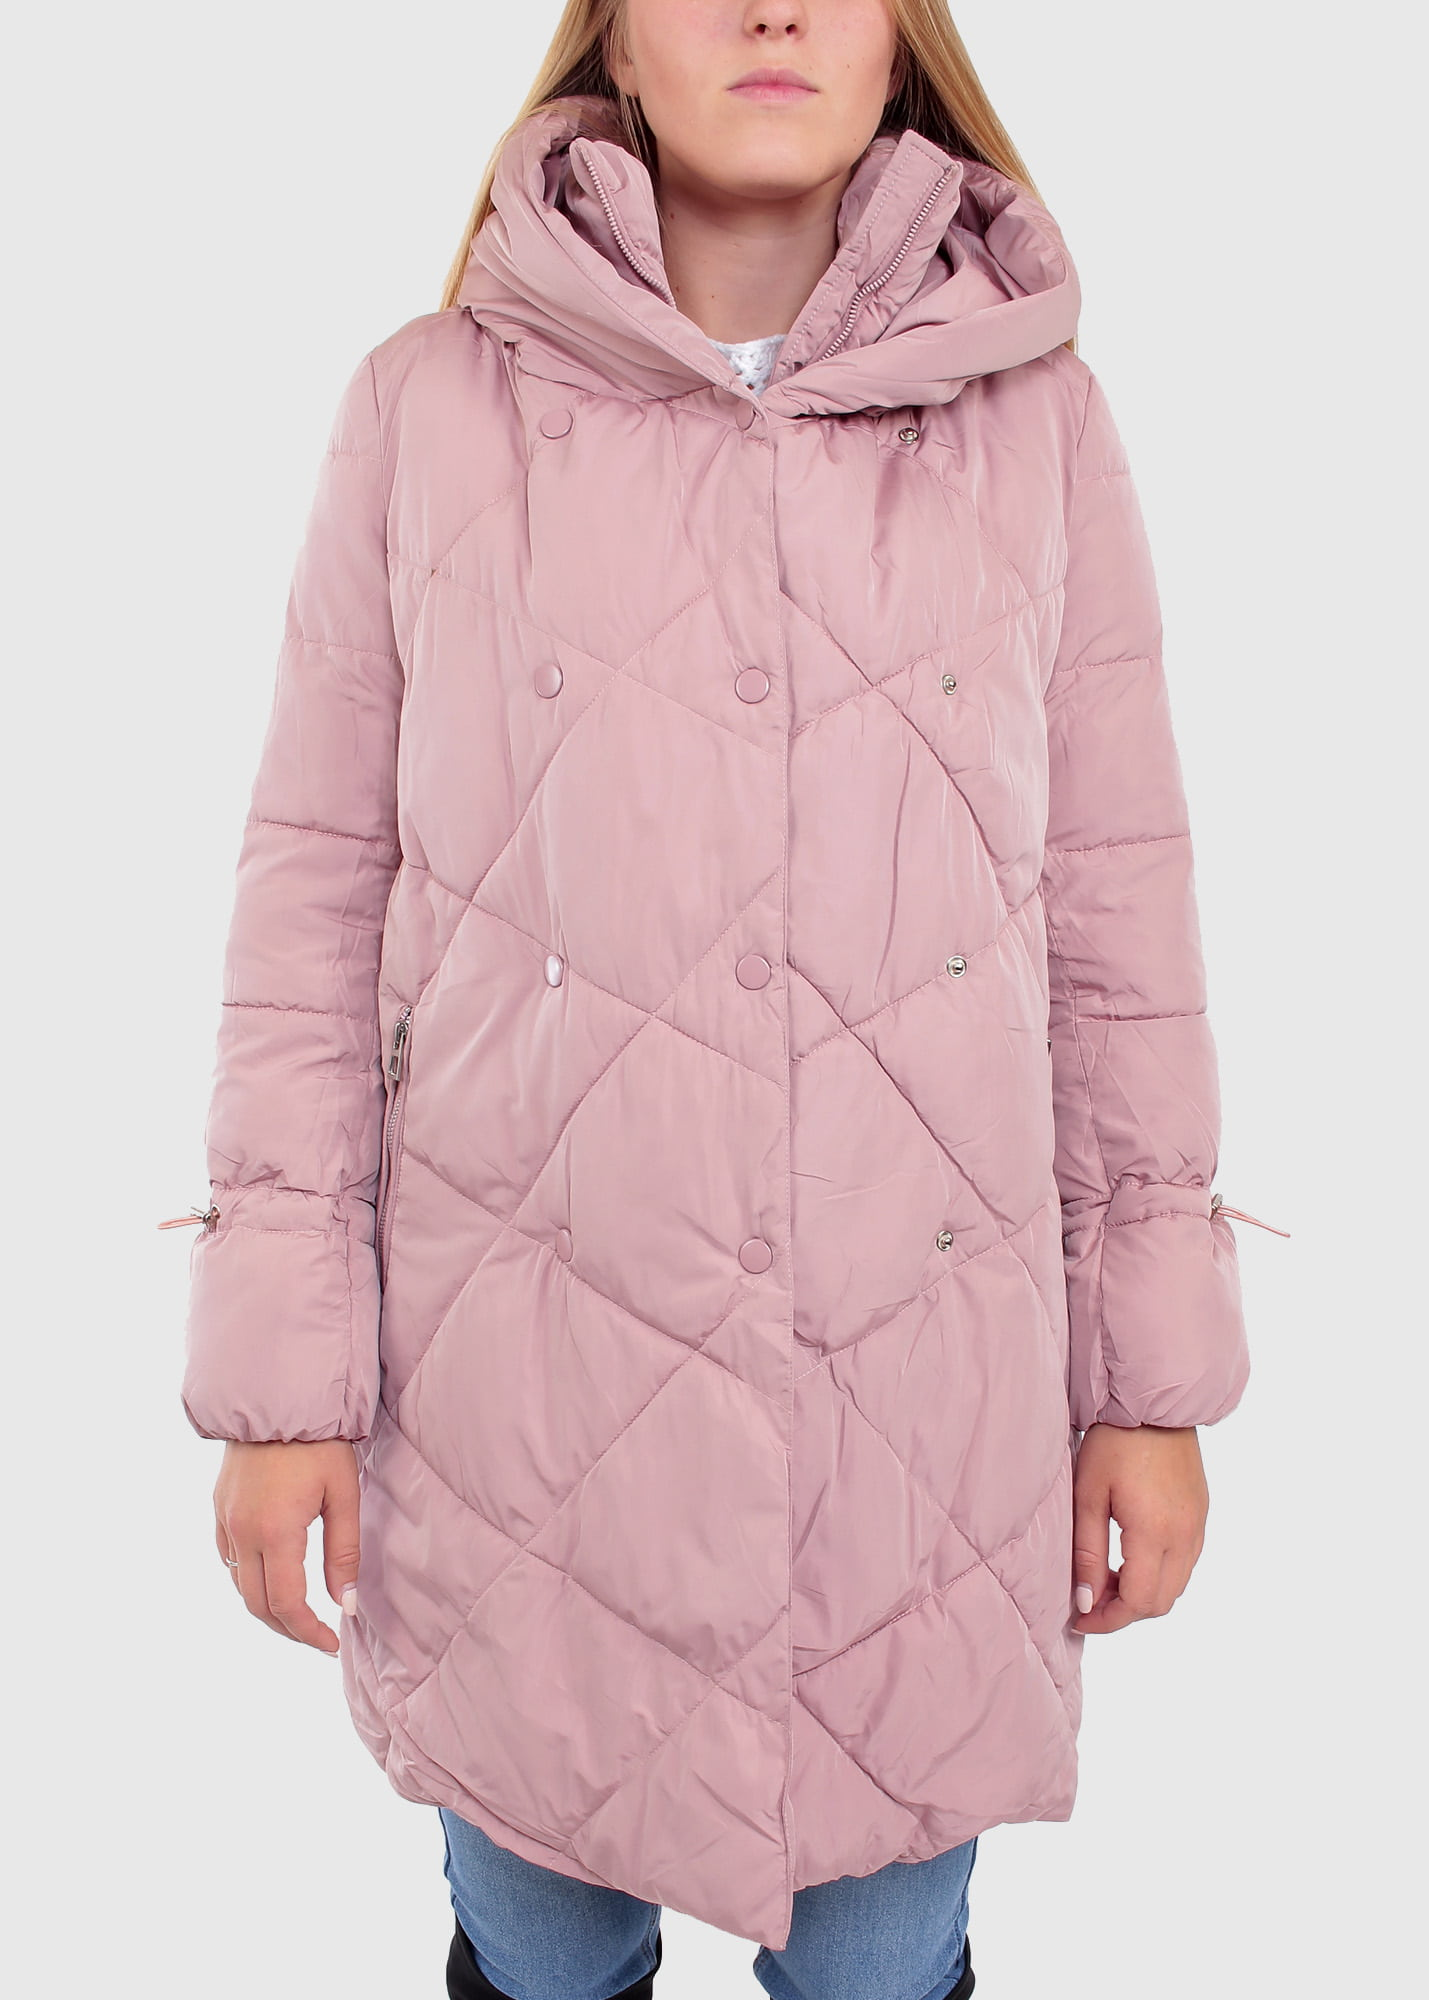 Photo №4 Elma pink women's jacket